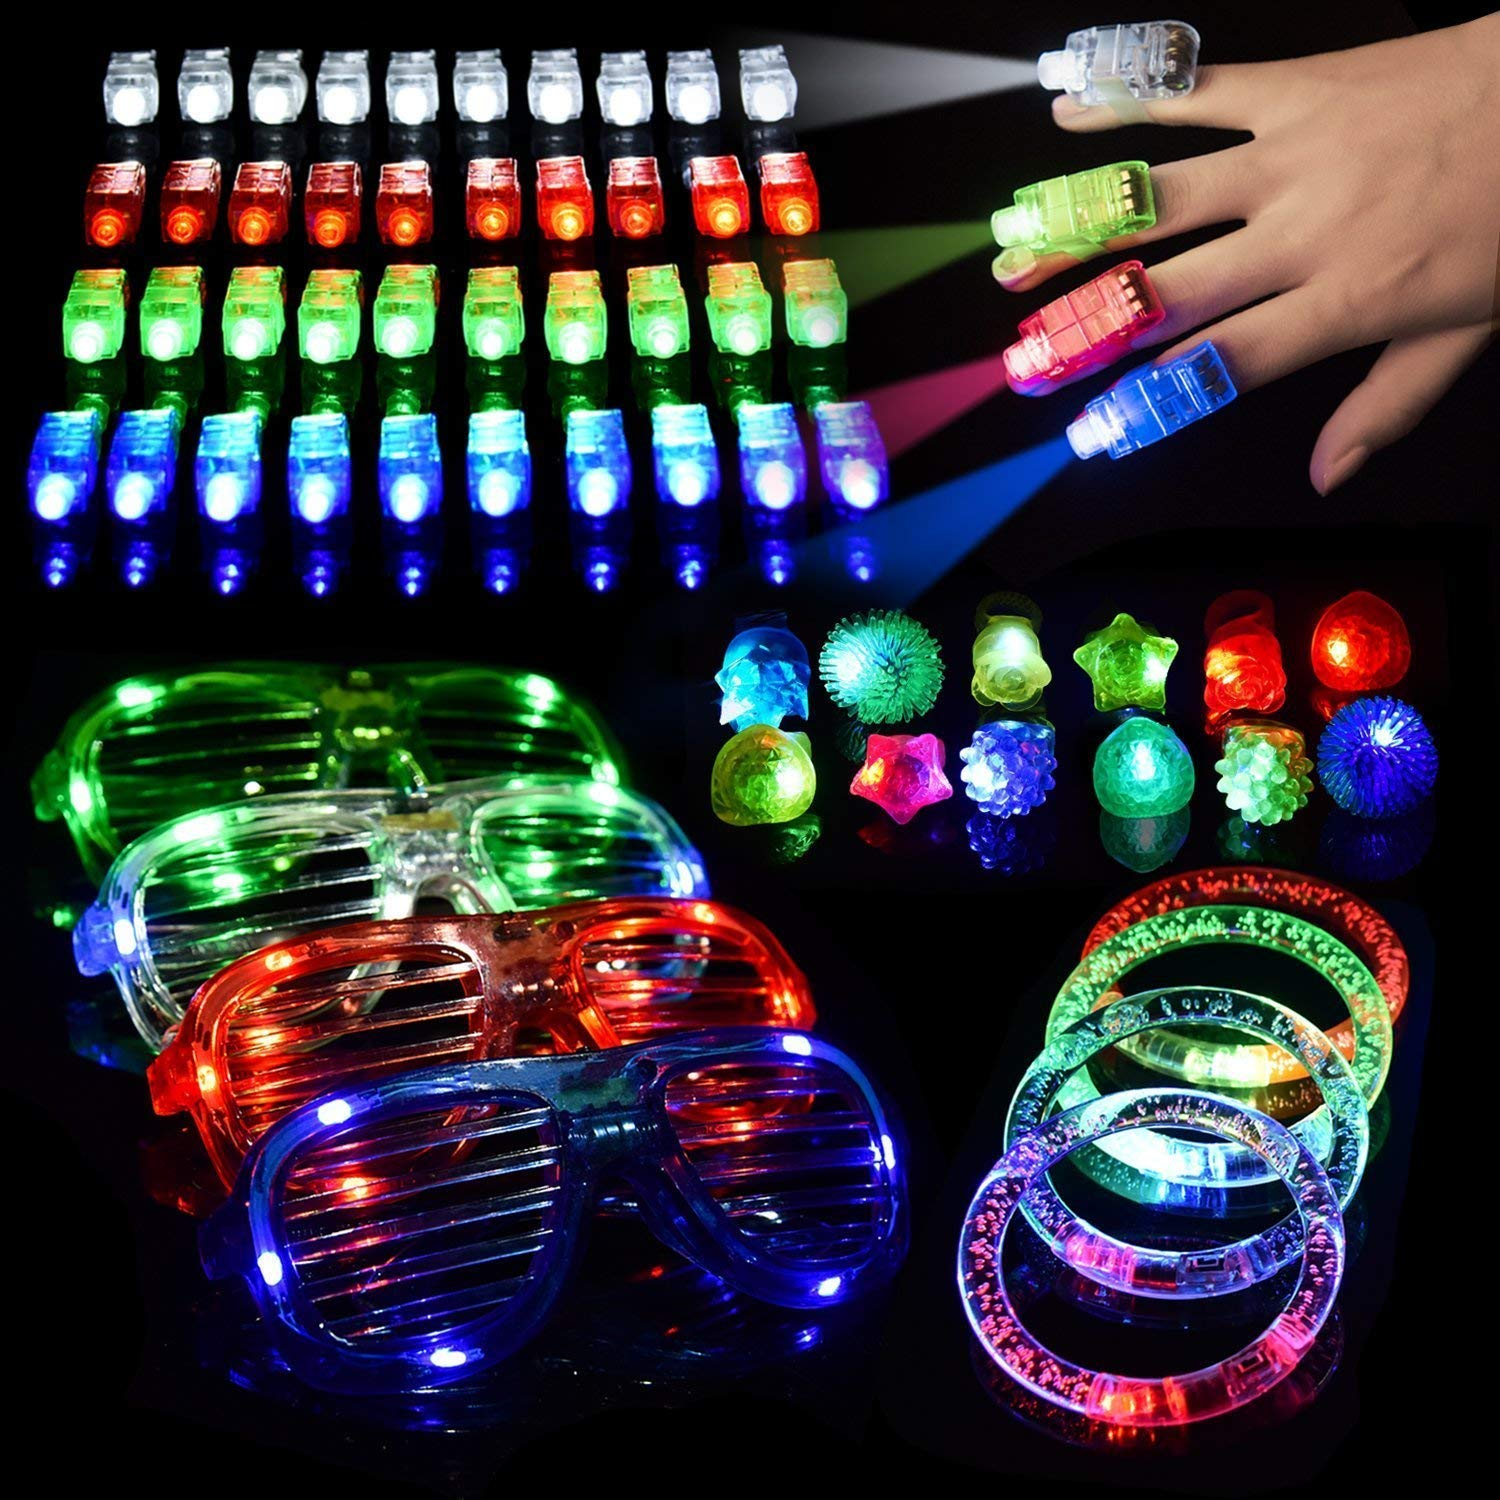 60 PCS LED Light Up Toys Glow in The Dark Party Supplies, Halloween Party Favors for Kids Including 40 LED Finger Lights, 12 Flashing Bumpy Rings, 4 Bracelets and 4 Flashing Slotted Shades Glasses